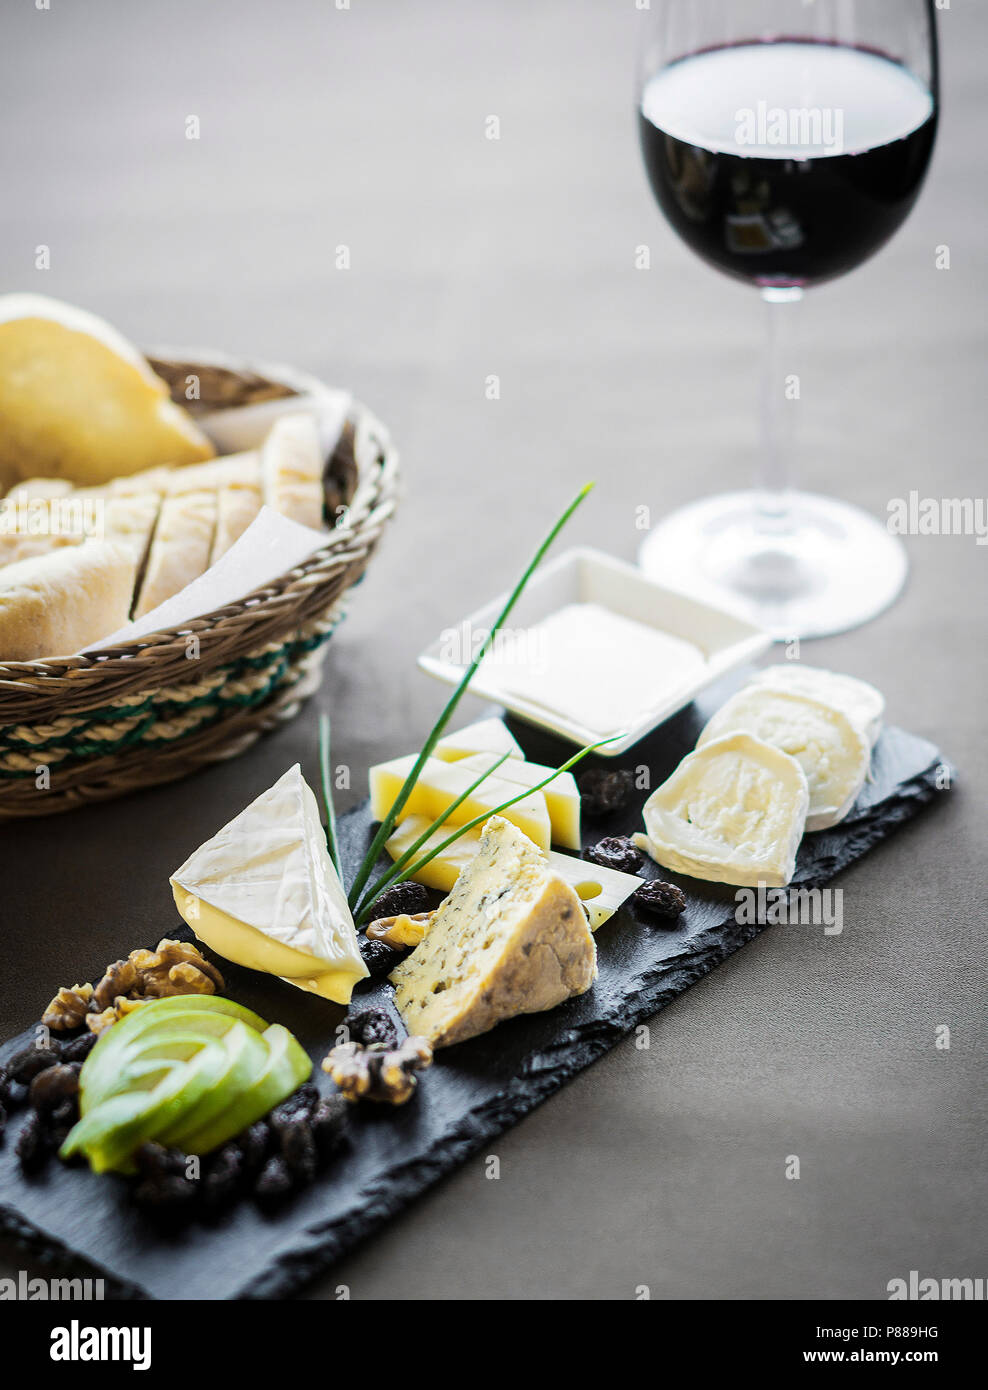 Cheese Bread And Wine Tapas Snack Platter Set On Restaurant Table Stock Photo Alamy